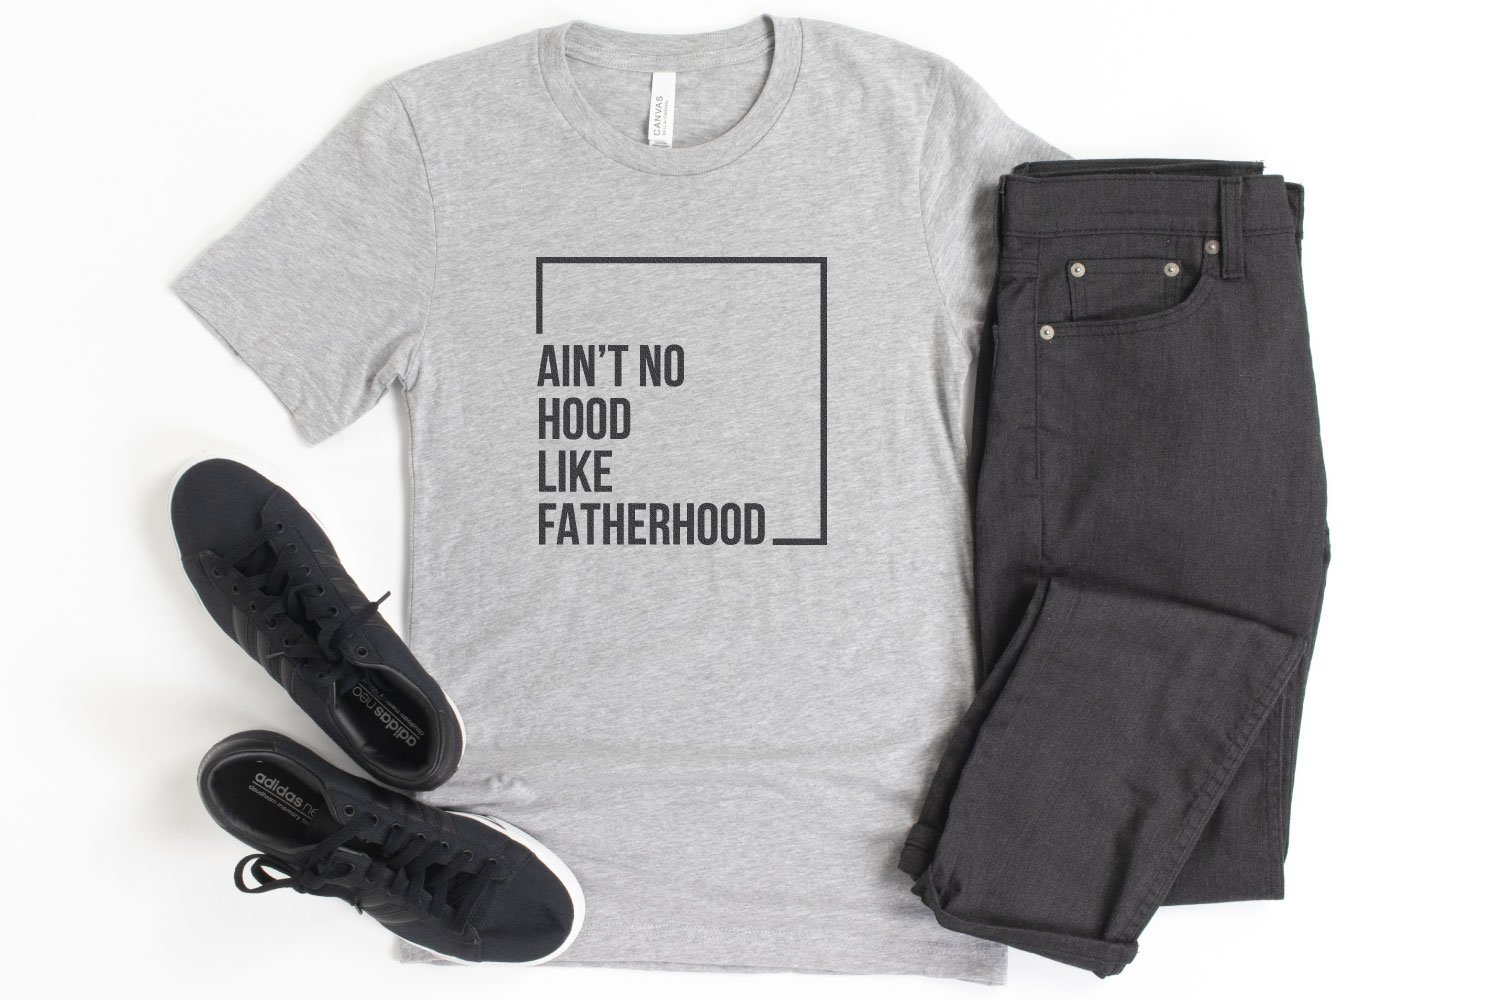 """Ain't No Hood Like Fatherhood"" SVG on a gray shirt with black pants."